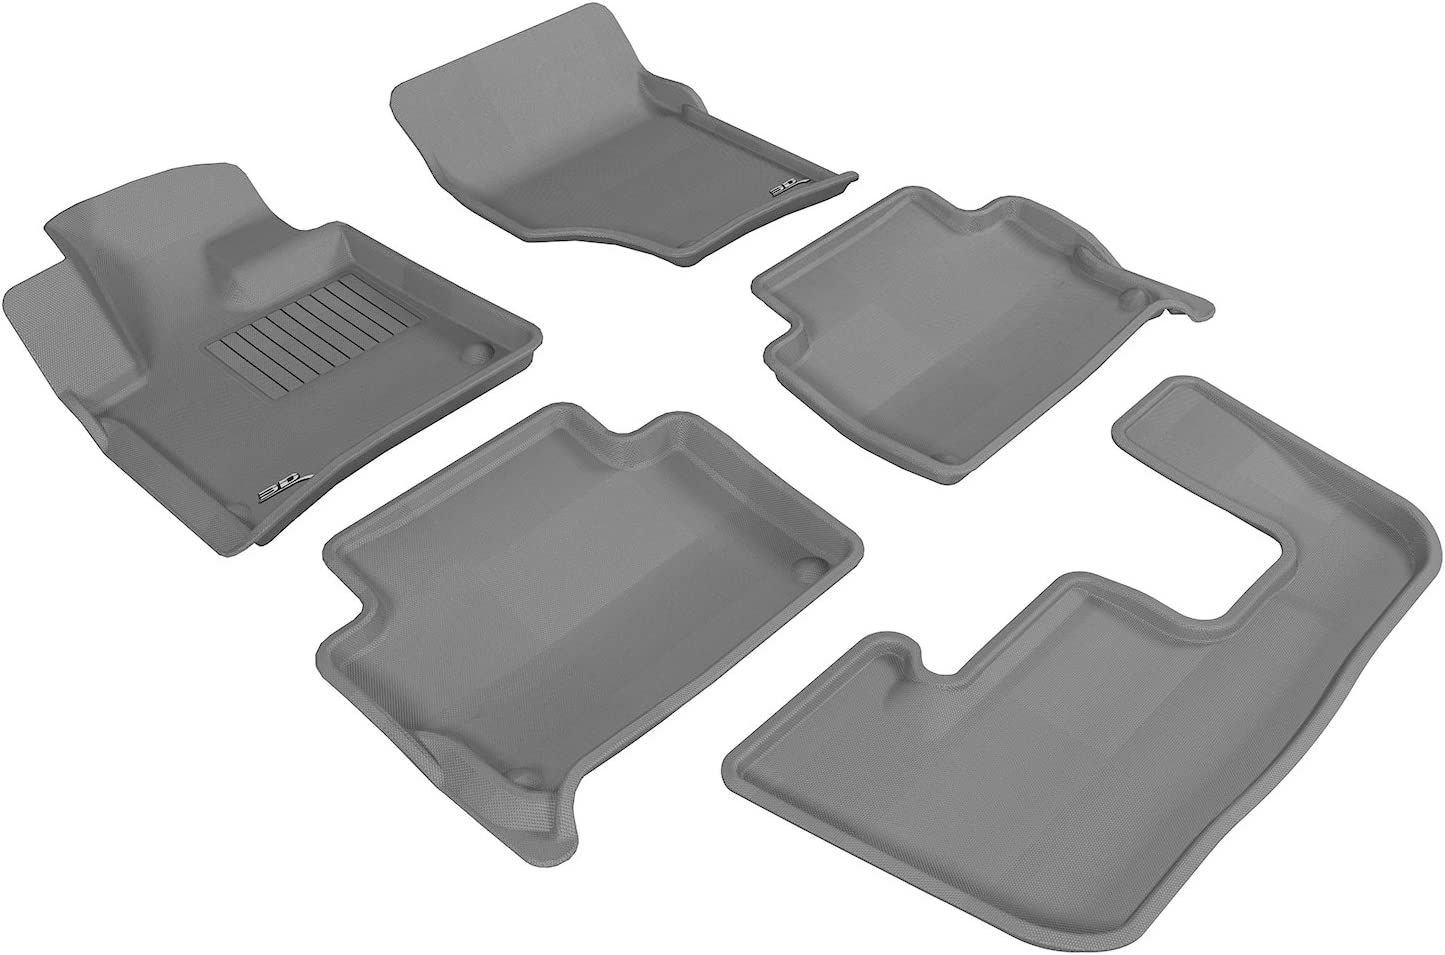 3D MAXpider Complete Set Custom Fit All-Weather Floor Mat for Select Audi Q7 Models - Kagu Rubber (Gray) 71c3AqZIY7L